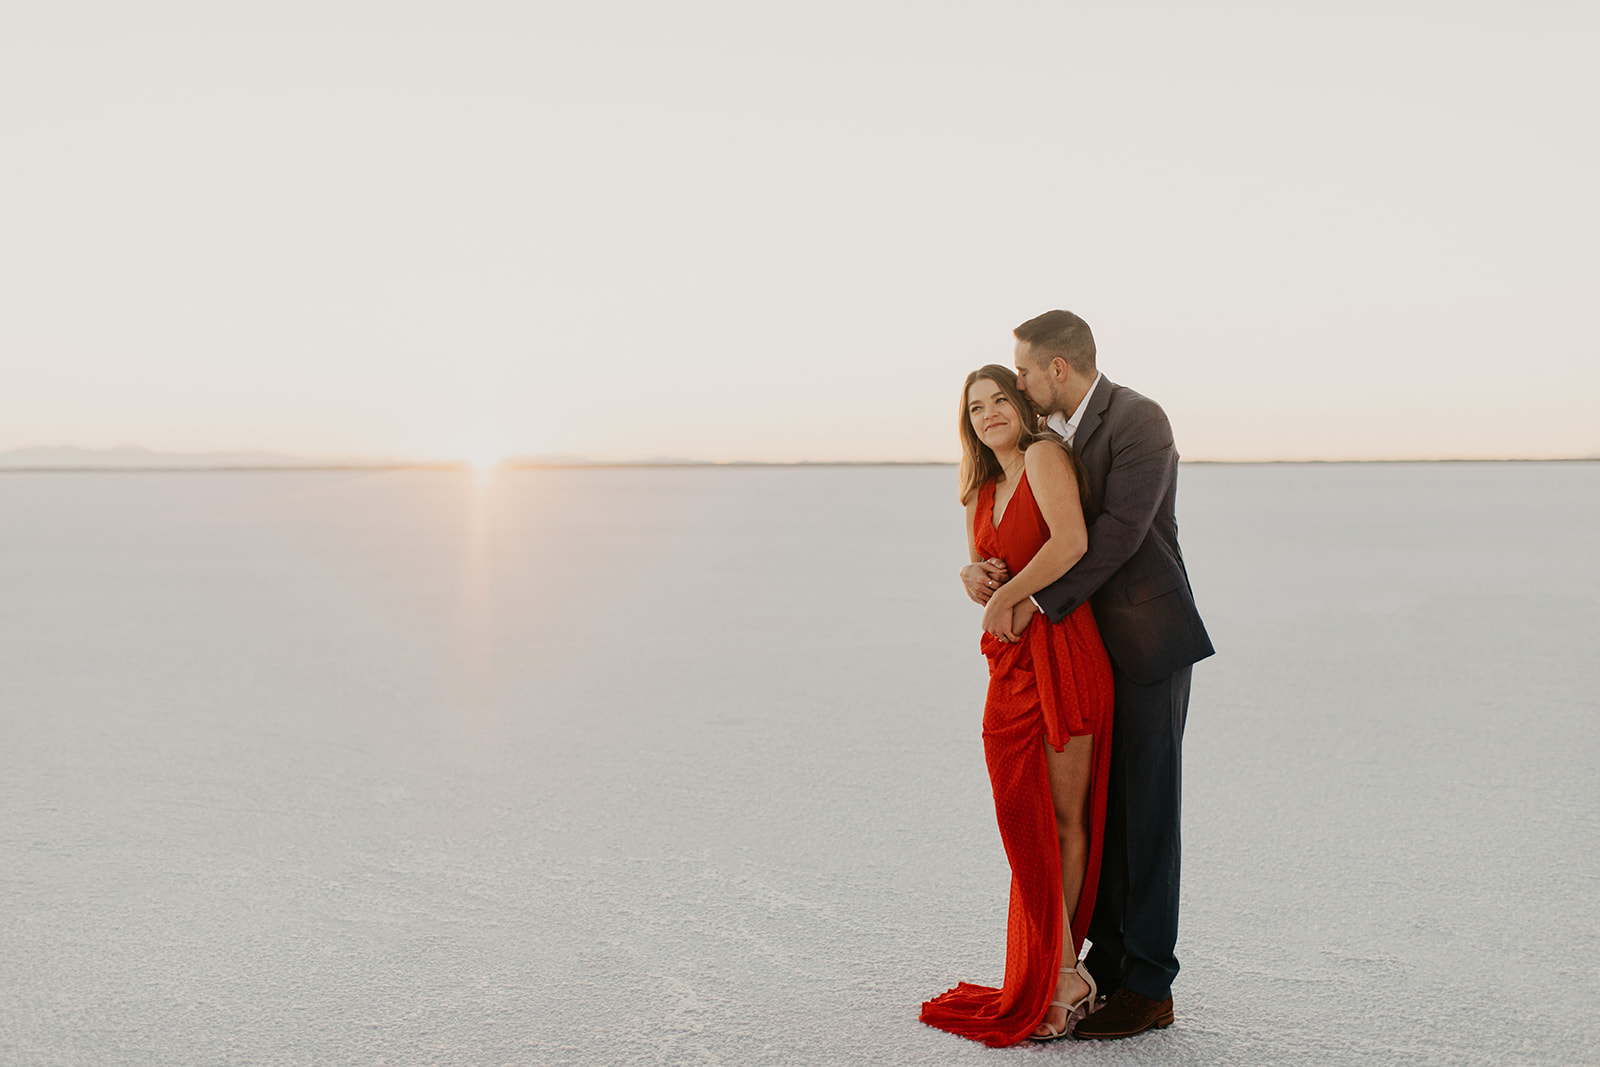 Anthony_Fleet_Engagement_KelseyRae-22-0-4480 copy.jpg